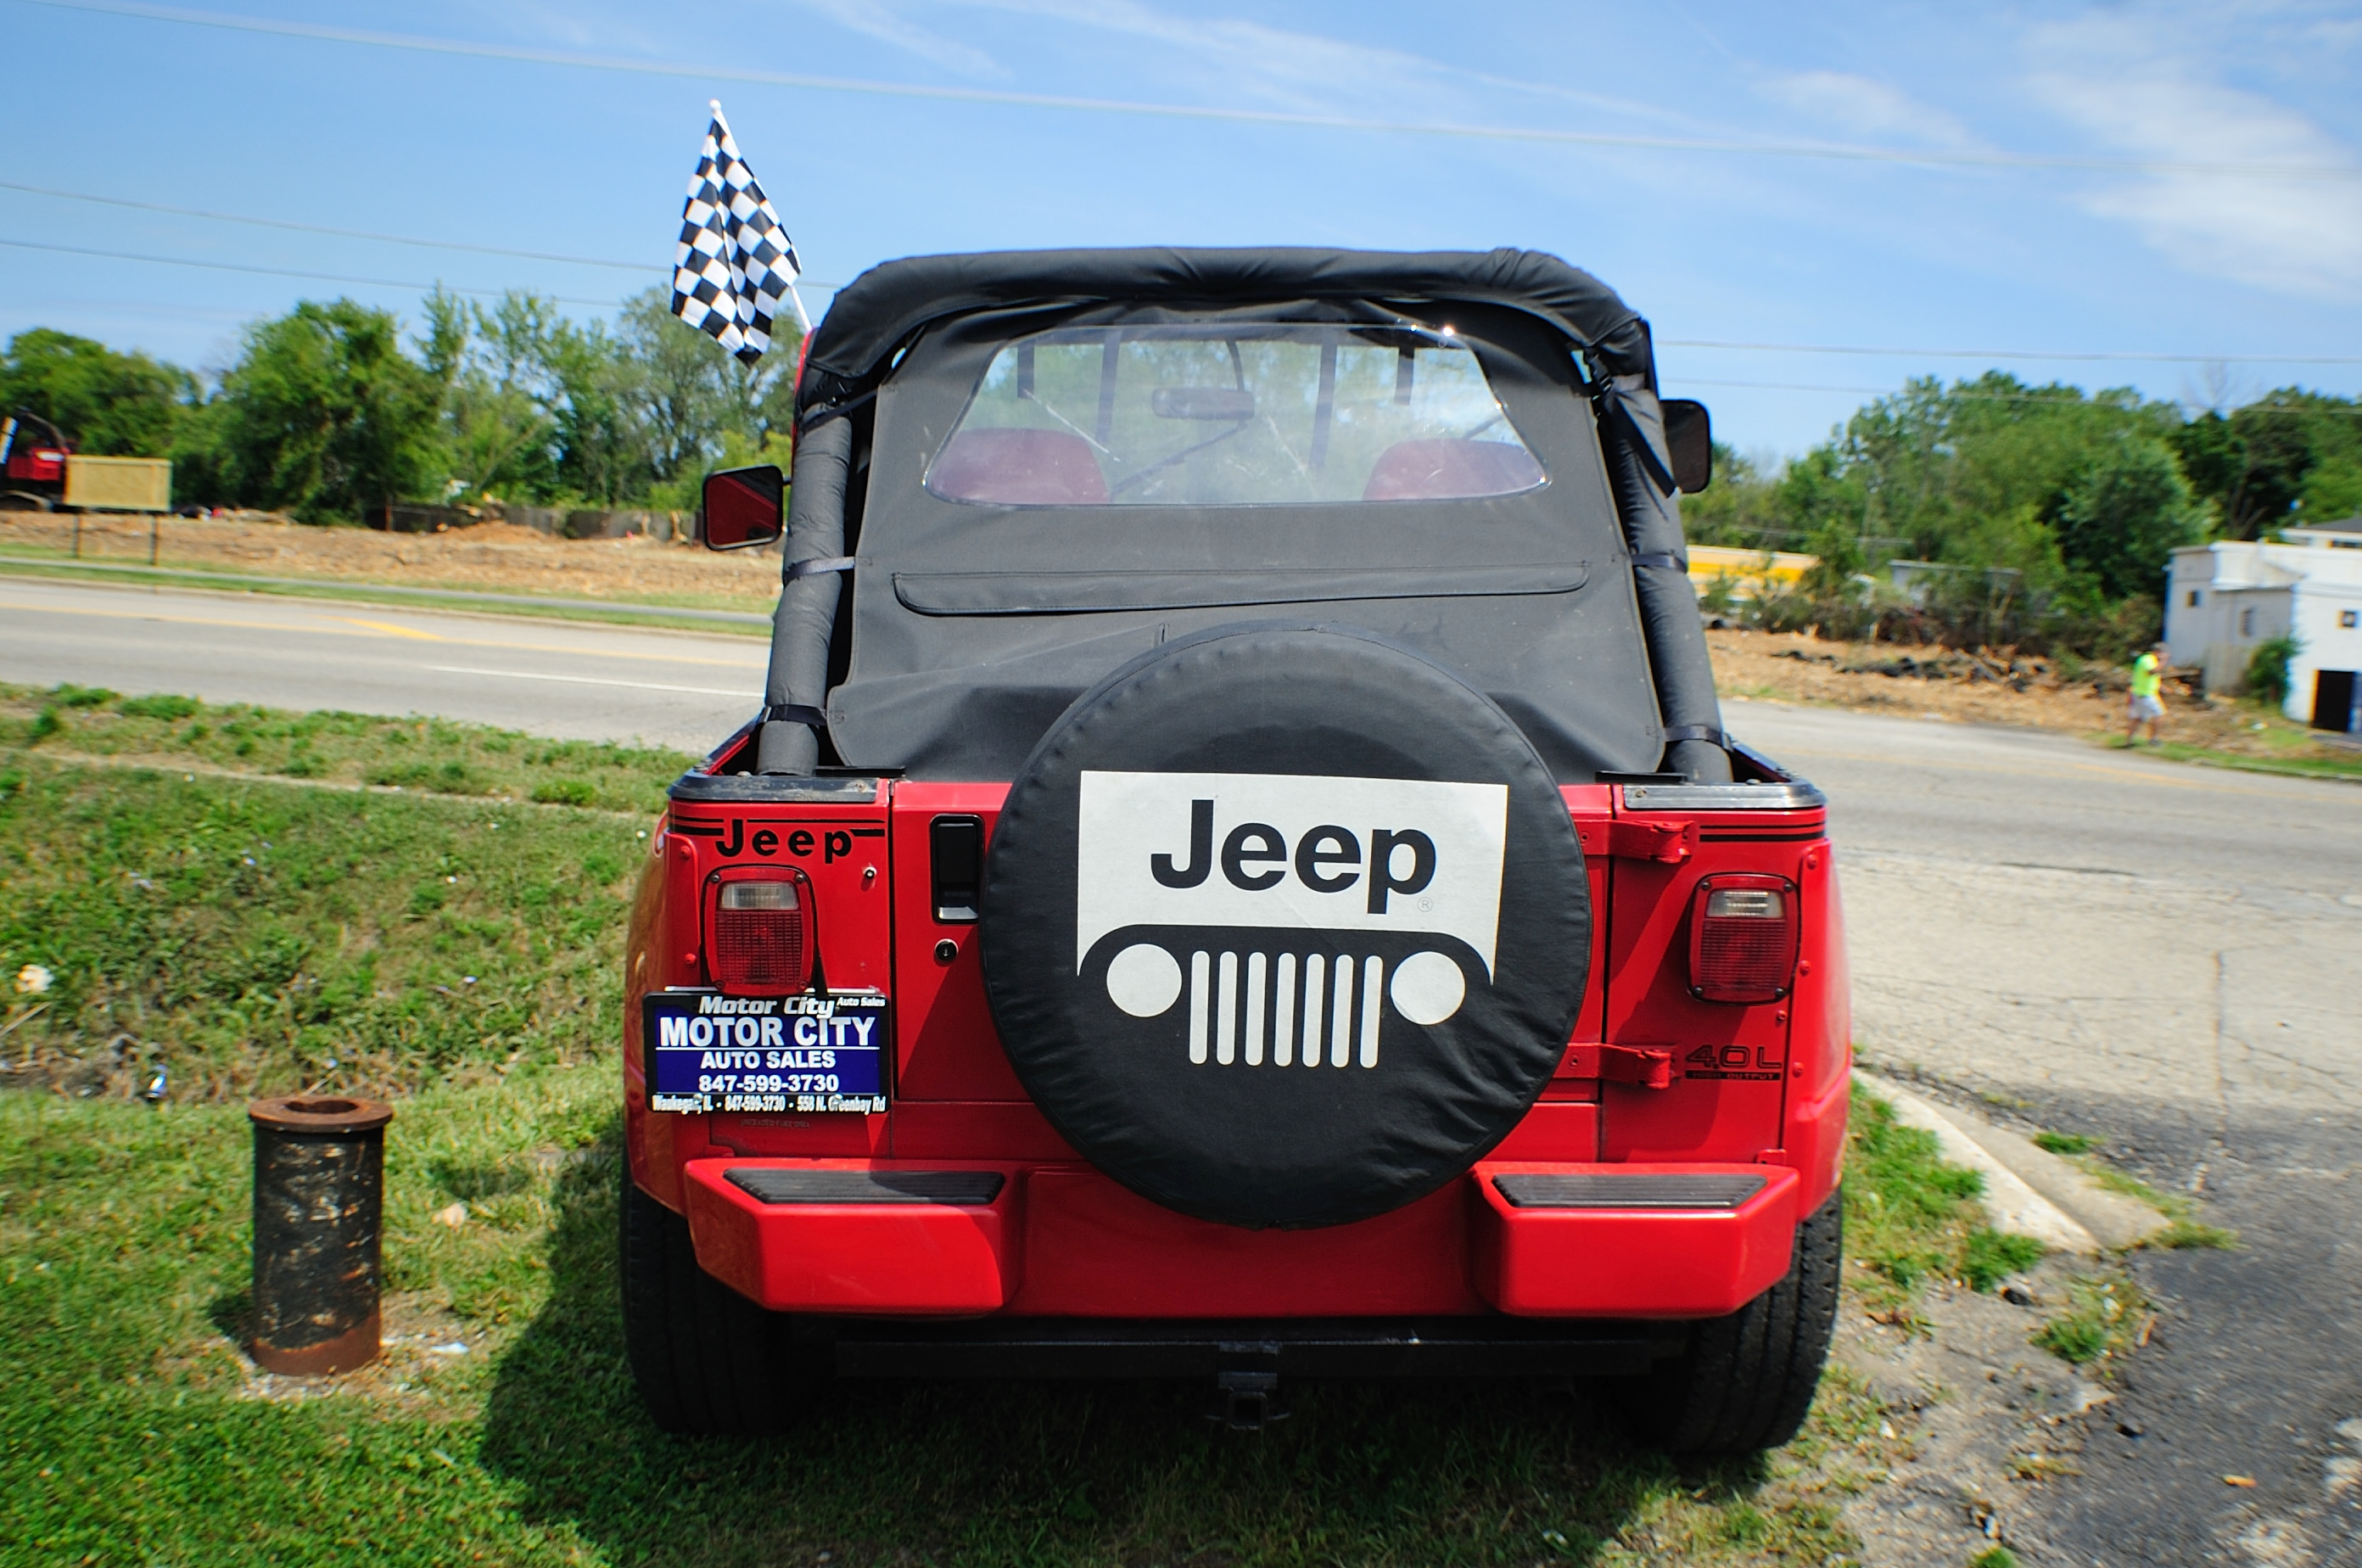 1991 Jeep Wrangler Renegade Red 4x4 Sale Waukegan Kenosha